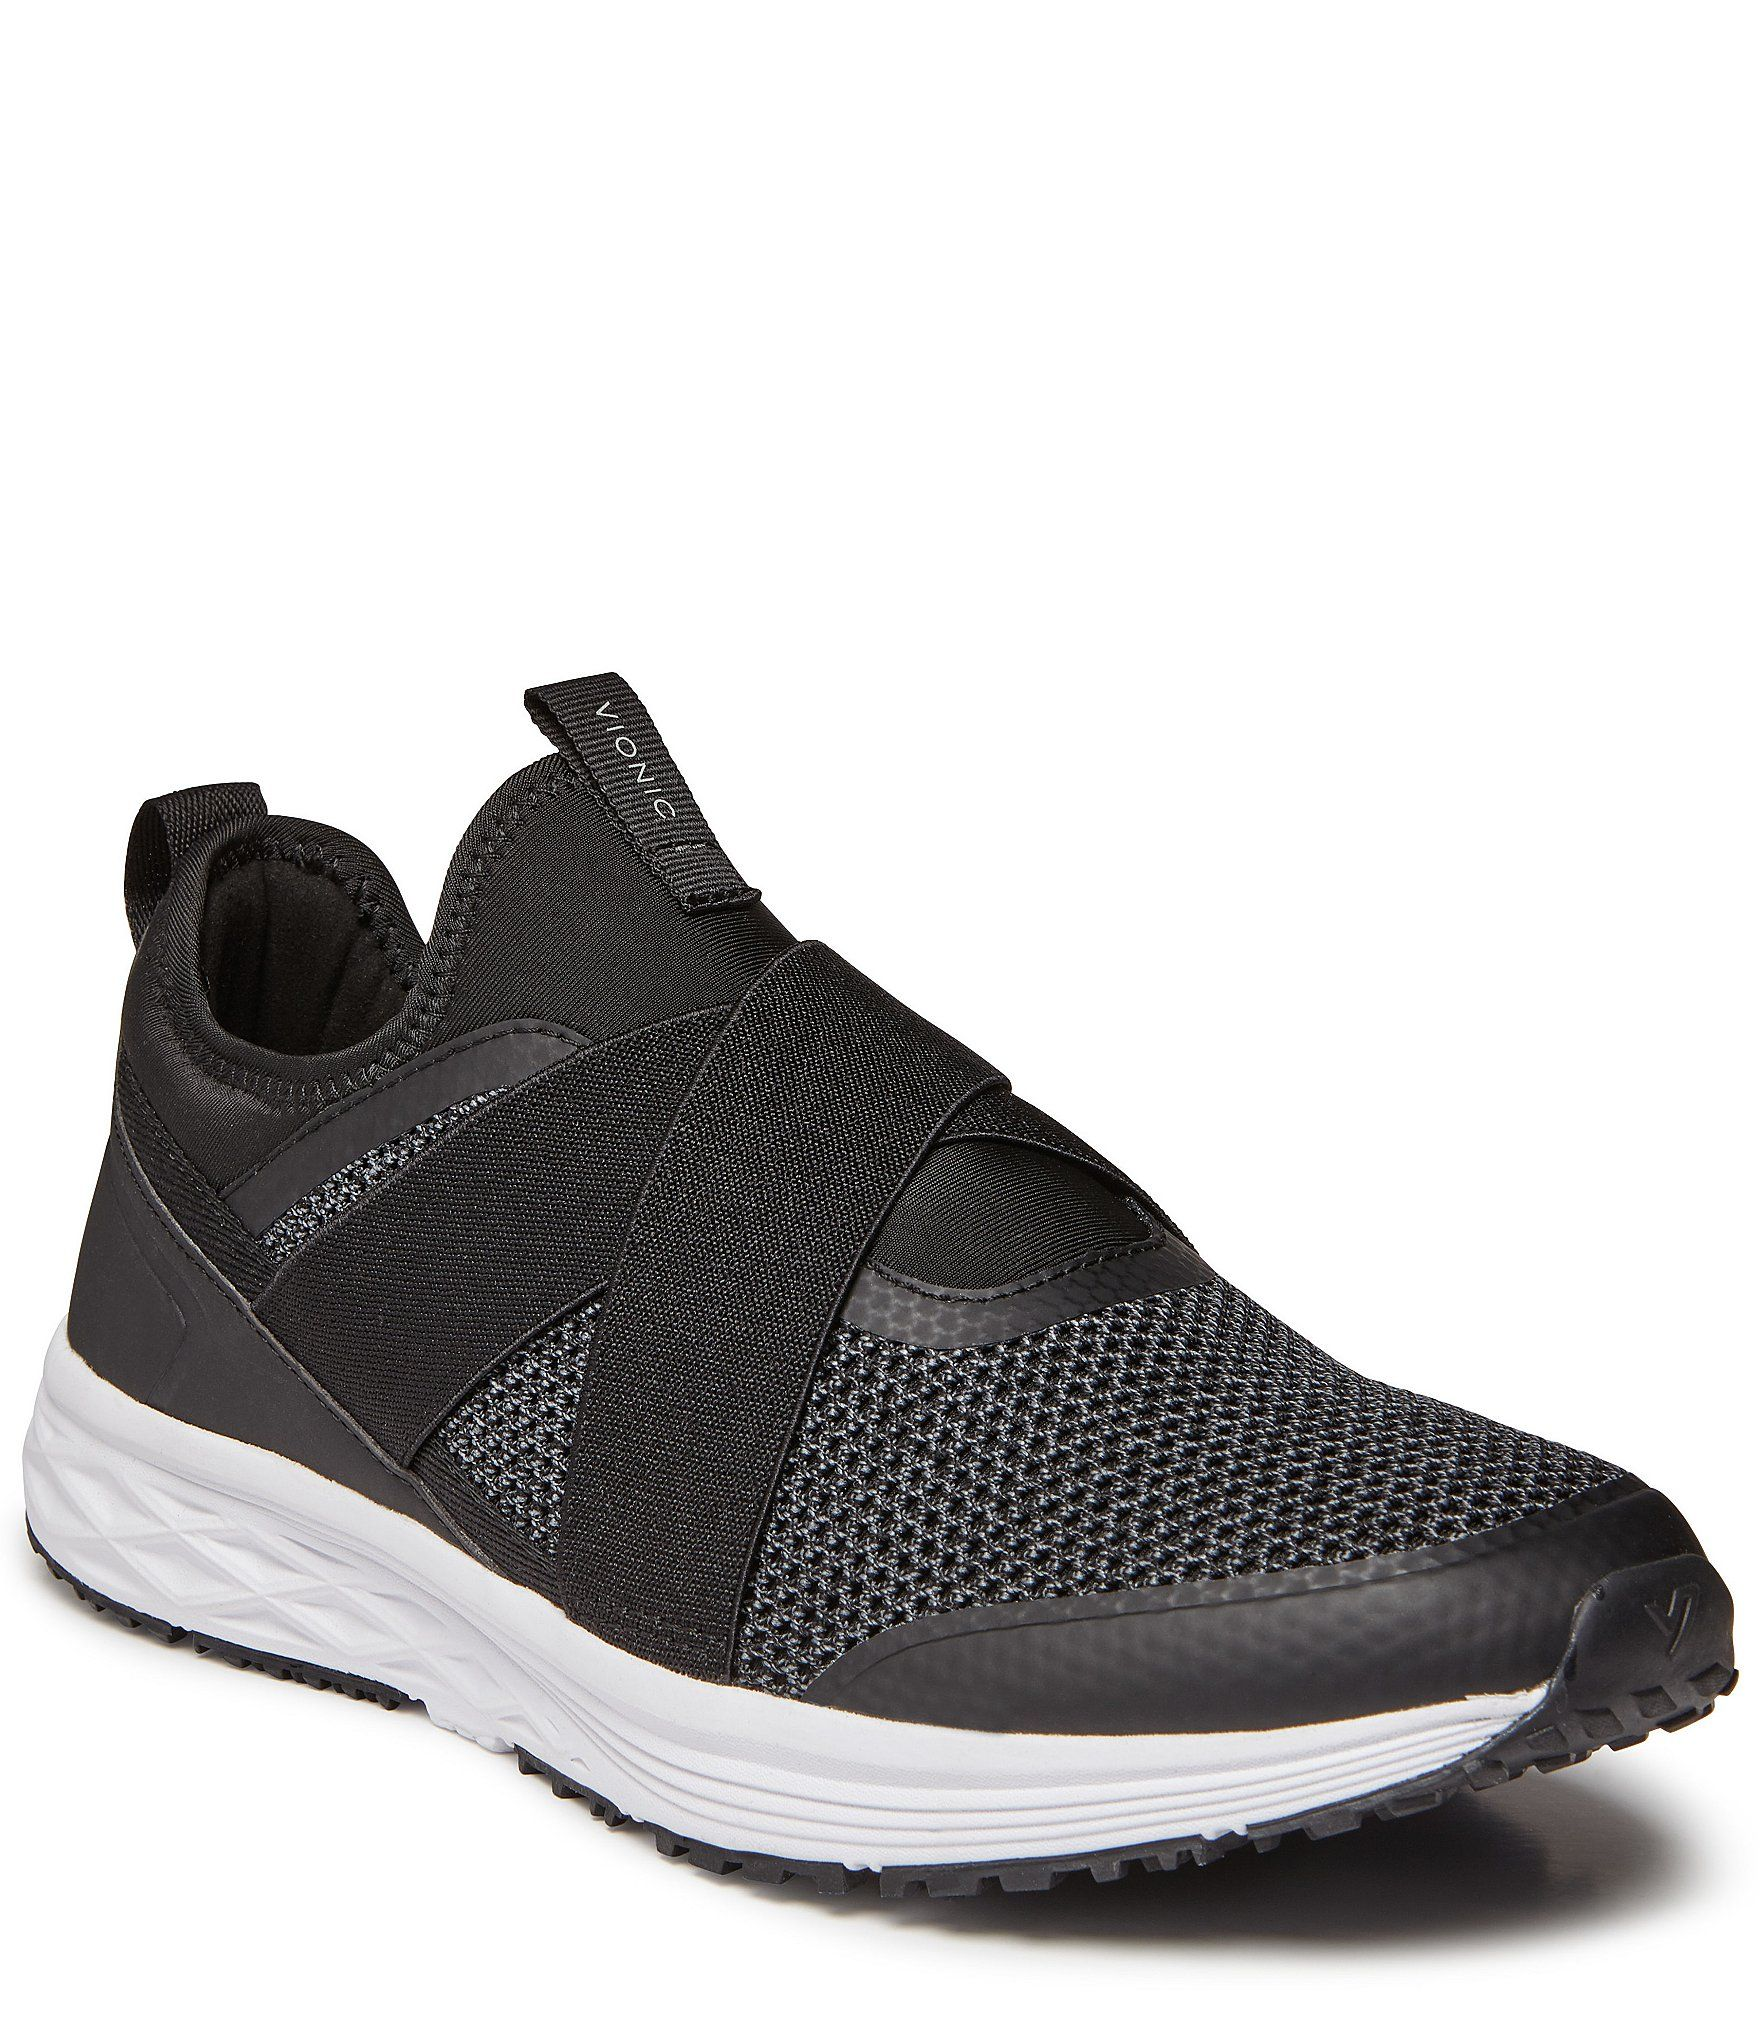 From Vionic, the Men's Jasper Sneaker features:Casual slip-on Crossover straps across the vamp and pull-tab detail for easy on and offMesh and man-made upperRemovable mesh covered EVADurable rubber outsoleImported.